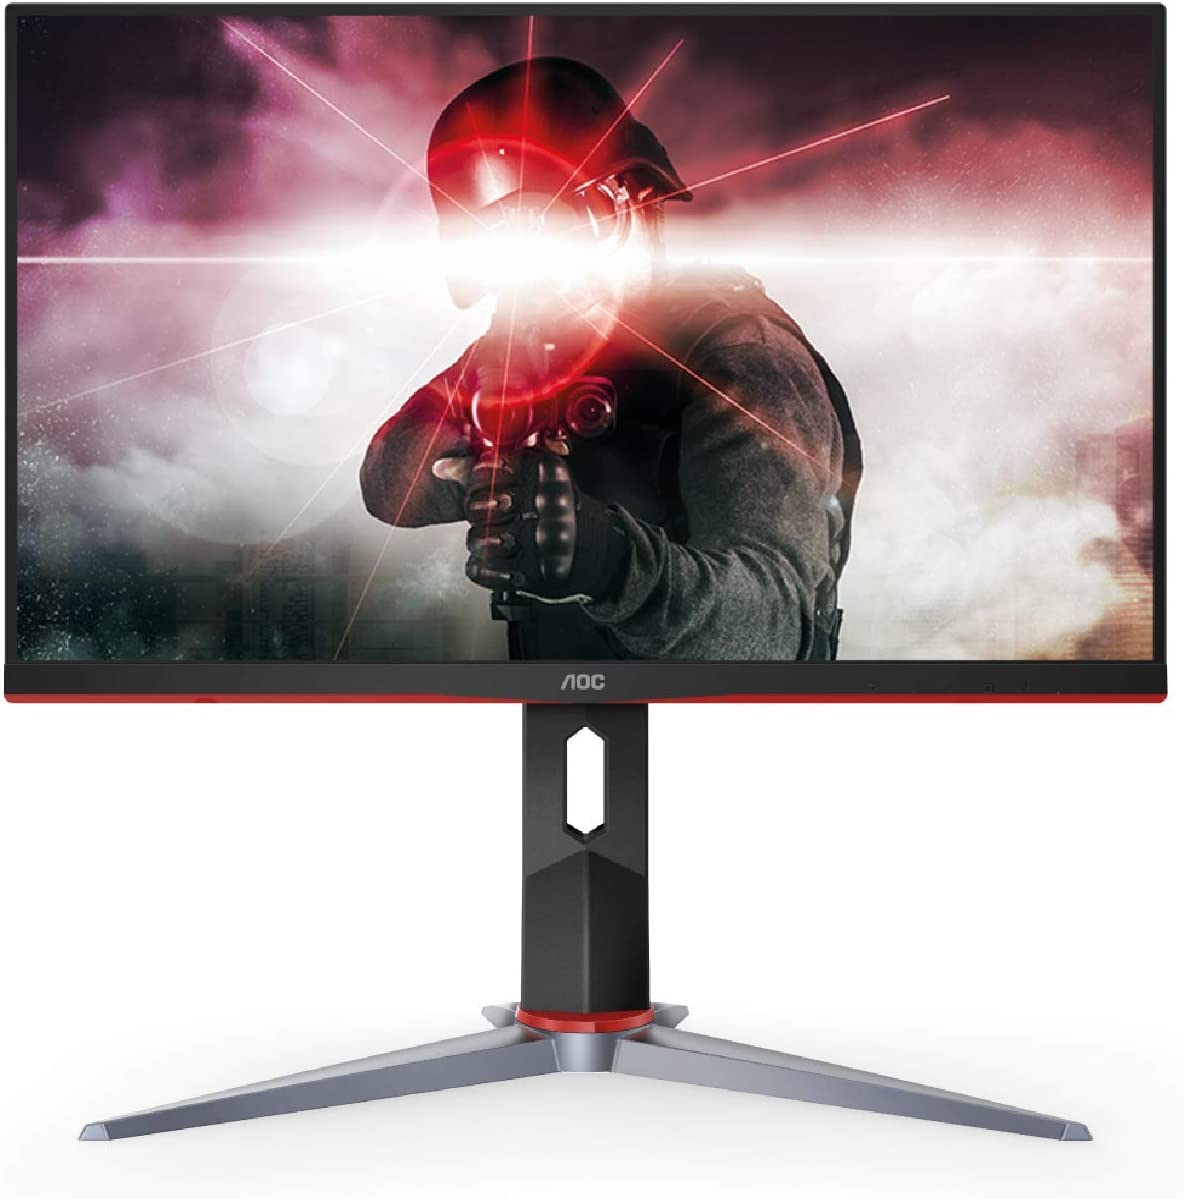 "AOC 27G2 27"" Frameless Gaming IPS Monitor (144Hz)"